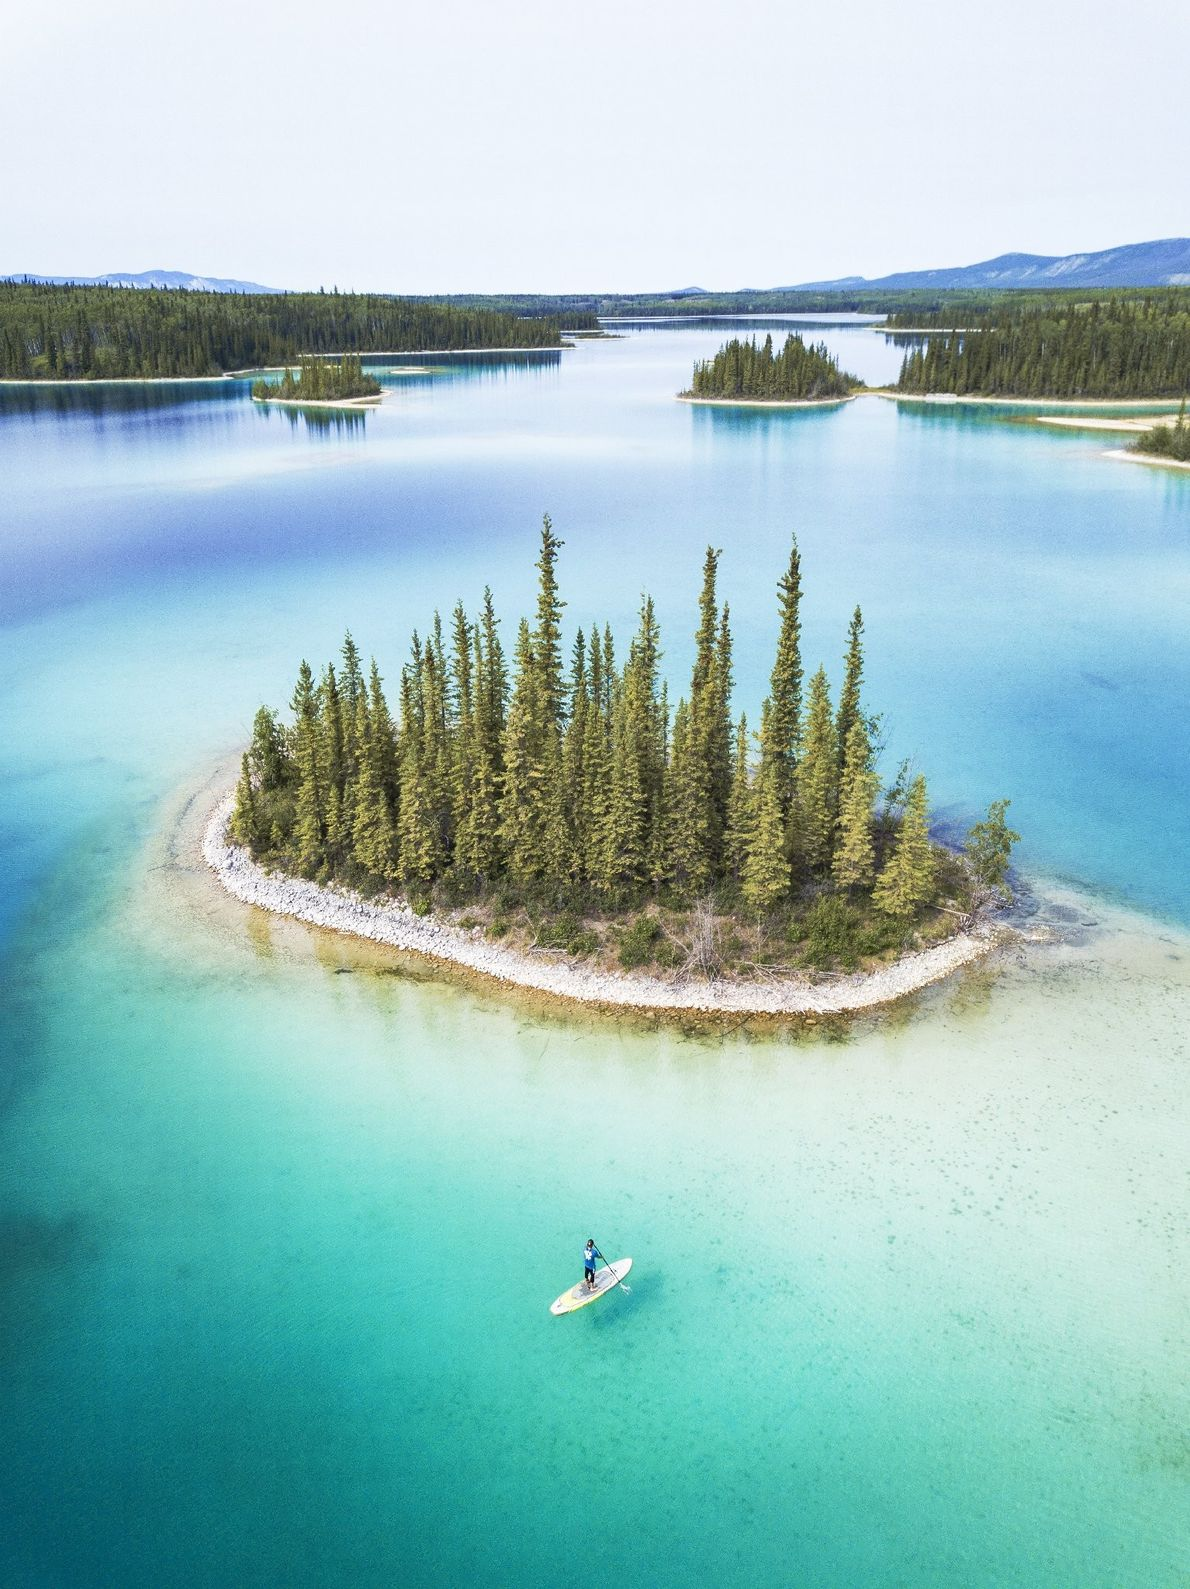 """I travelled over 20,000 miles in 2018 in search for the most epic lakes to paddleboard. ..."